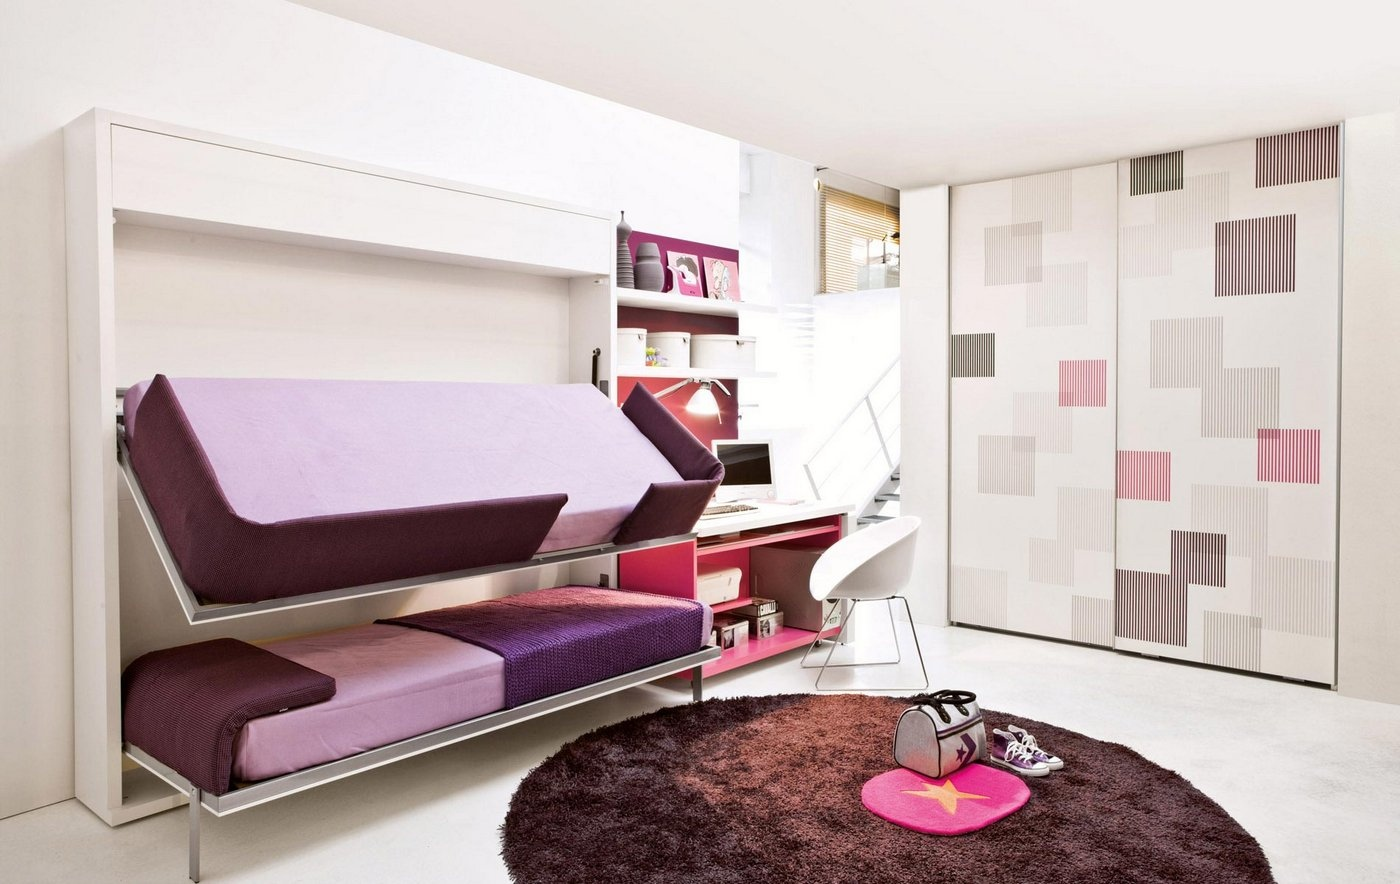 Schrankbett Junge Transformable Space Saving Kids Rooms Architecture And Design